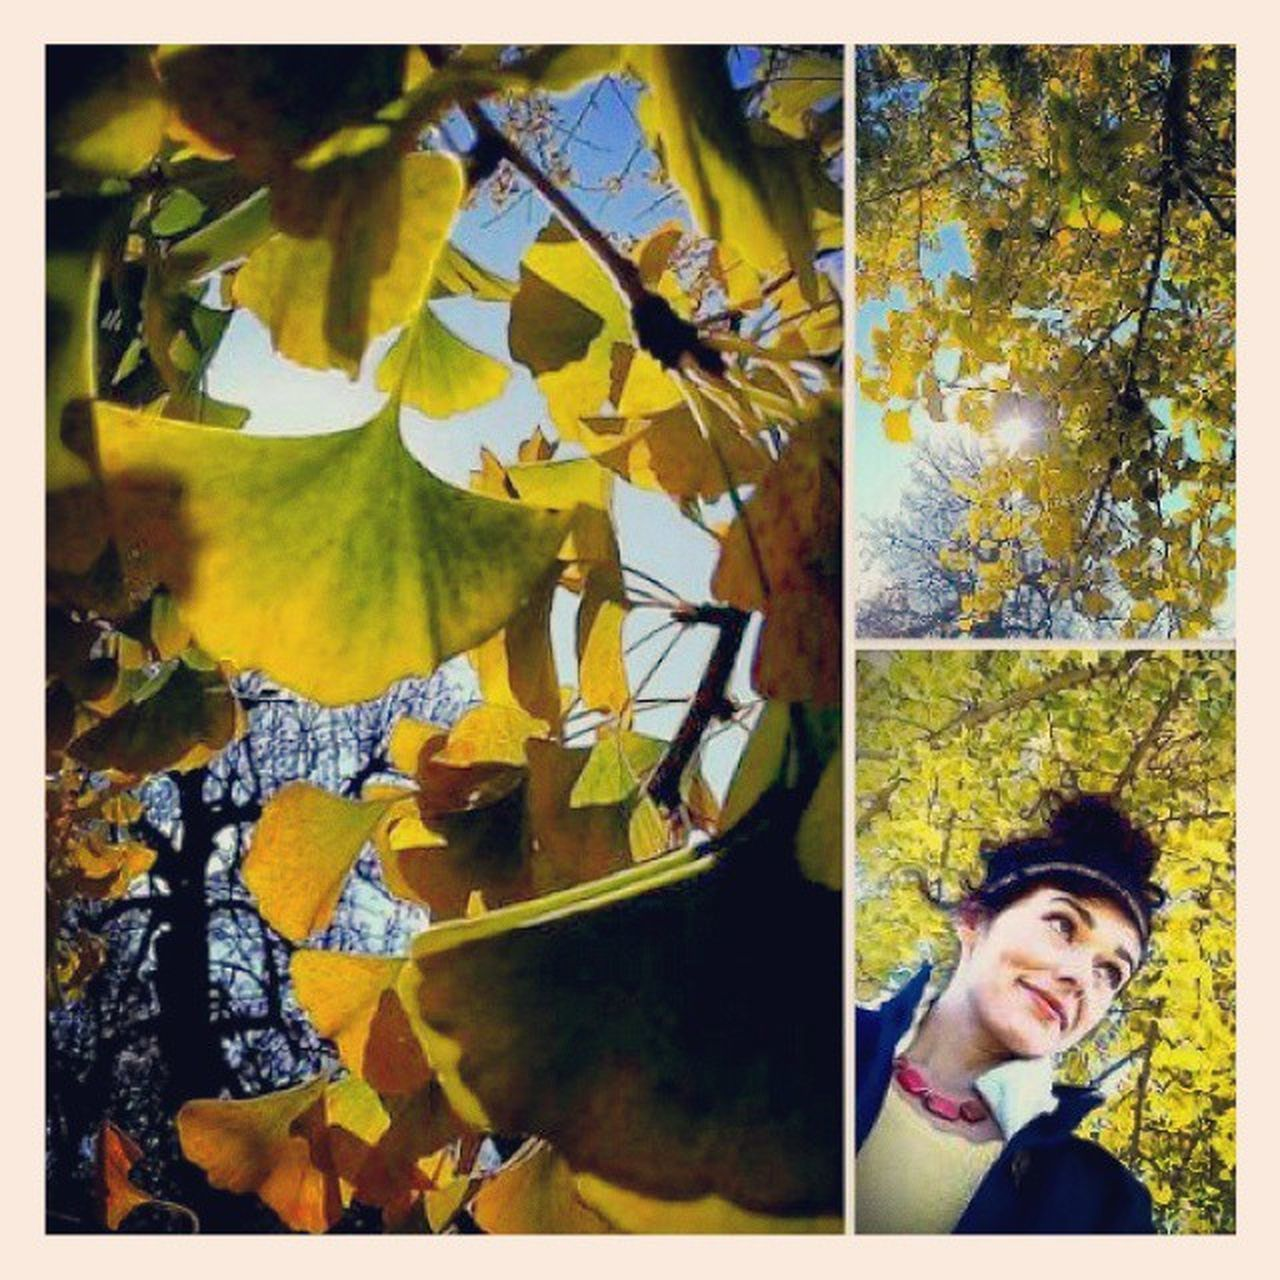 Ginko Stinkyfruit Photogram Photography Stopdropandselfie Photocollage Selfie Contrastingcolors Color Bluesky Autumncolors Fallfoliage Winchesterky Winchesterlove Winchesterfirst